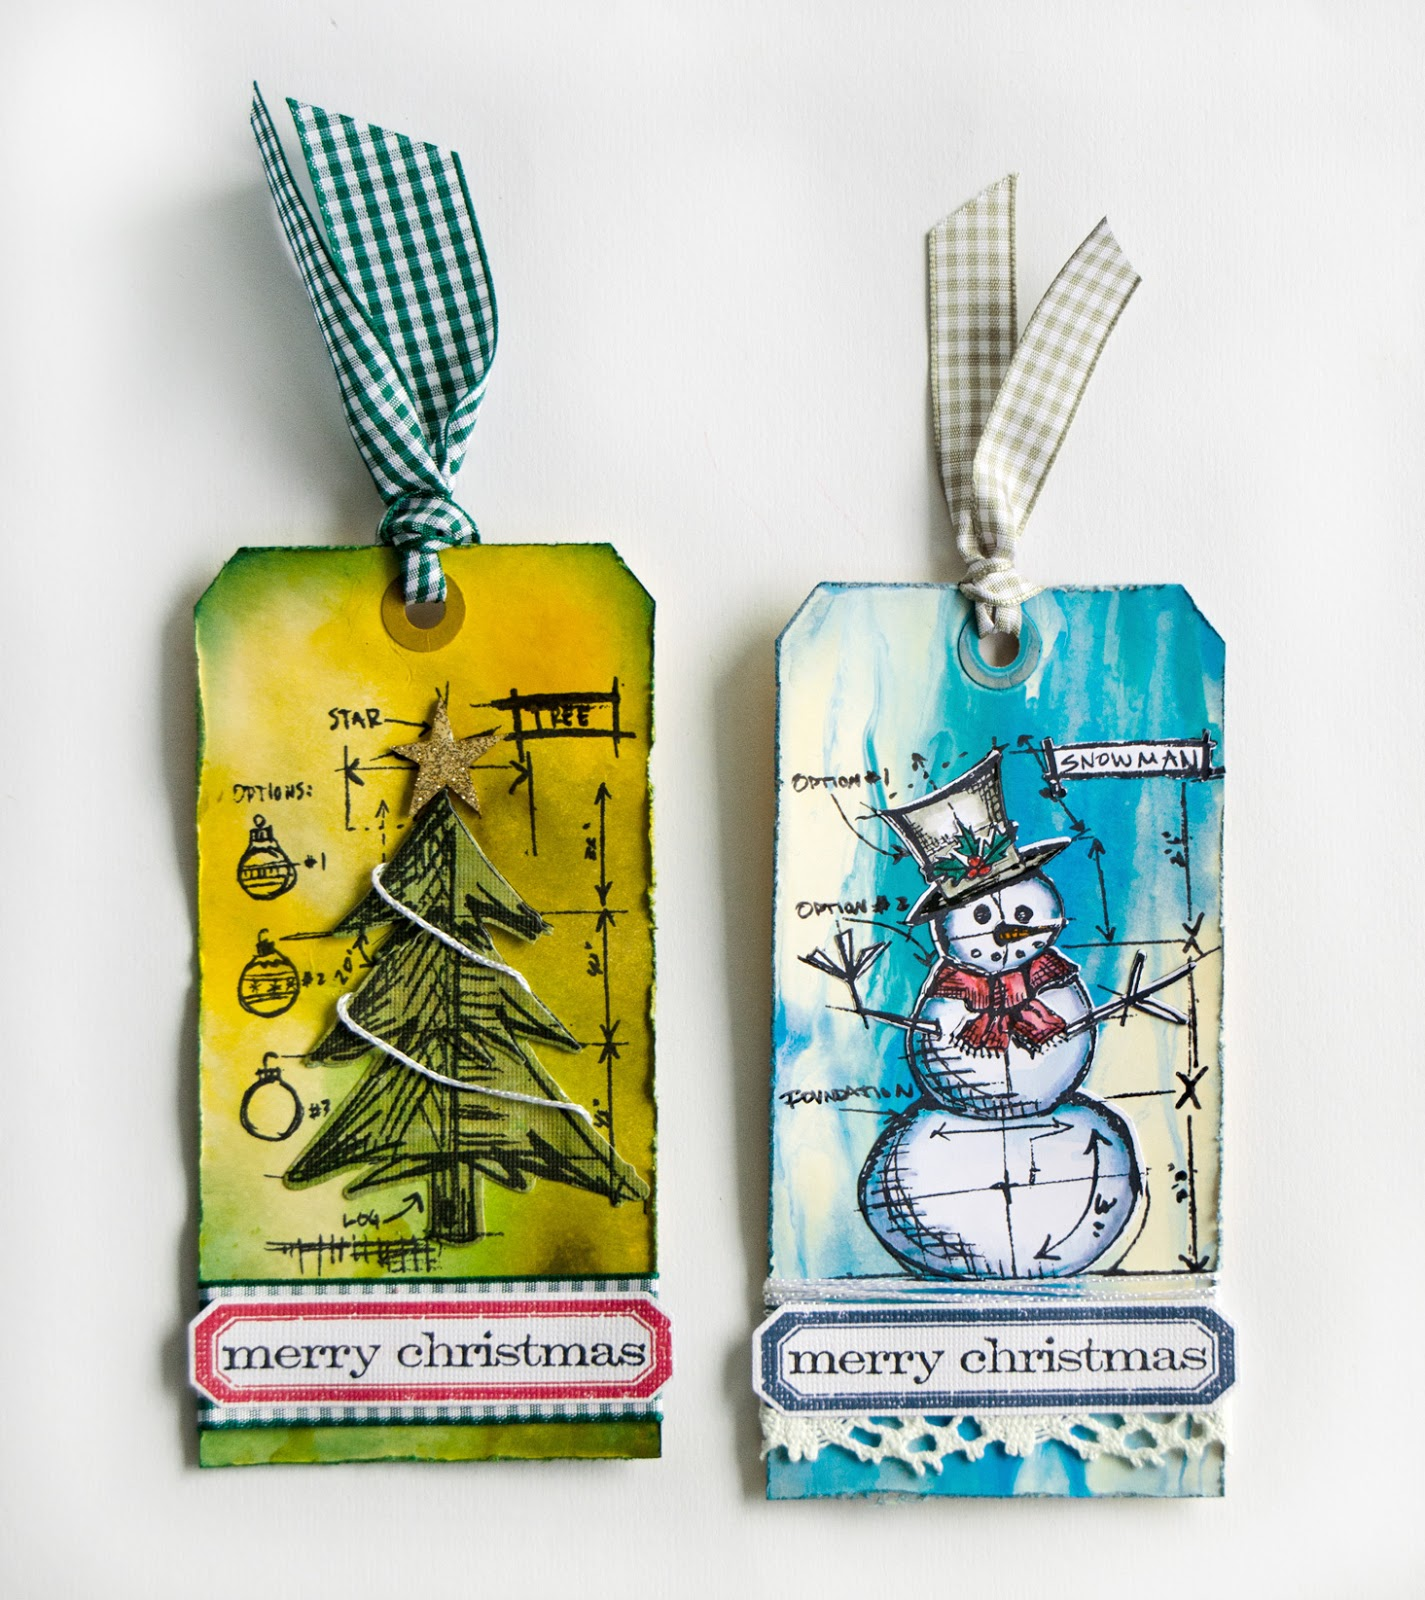 Stamped and die-cut images on Christmas themed tags